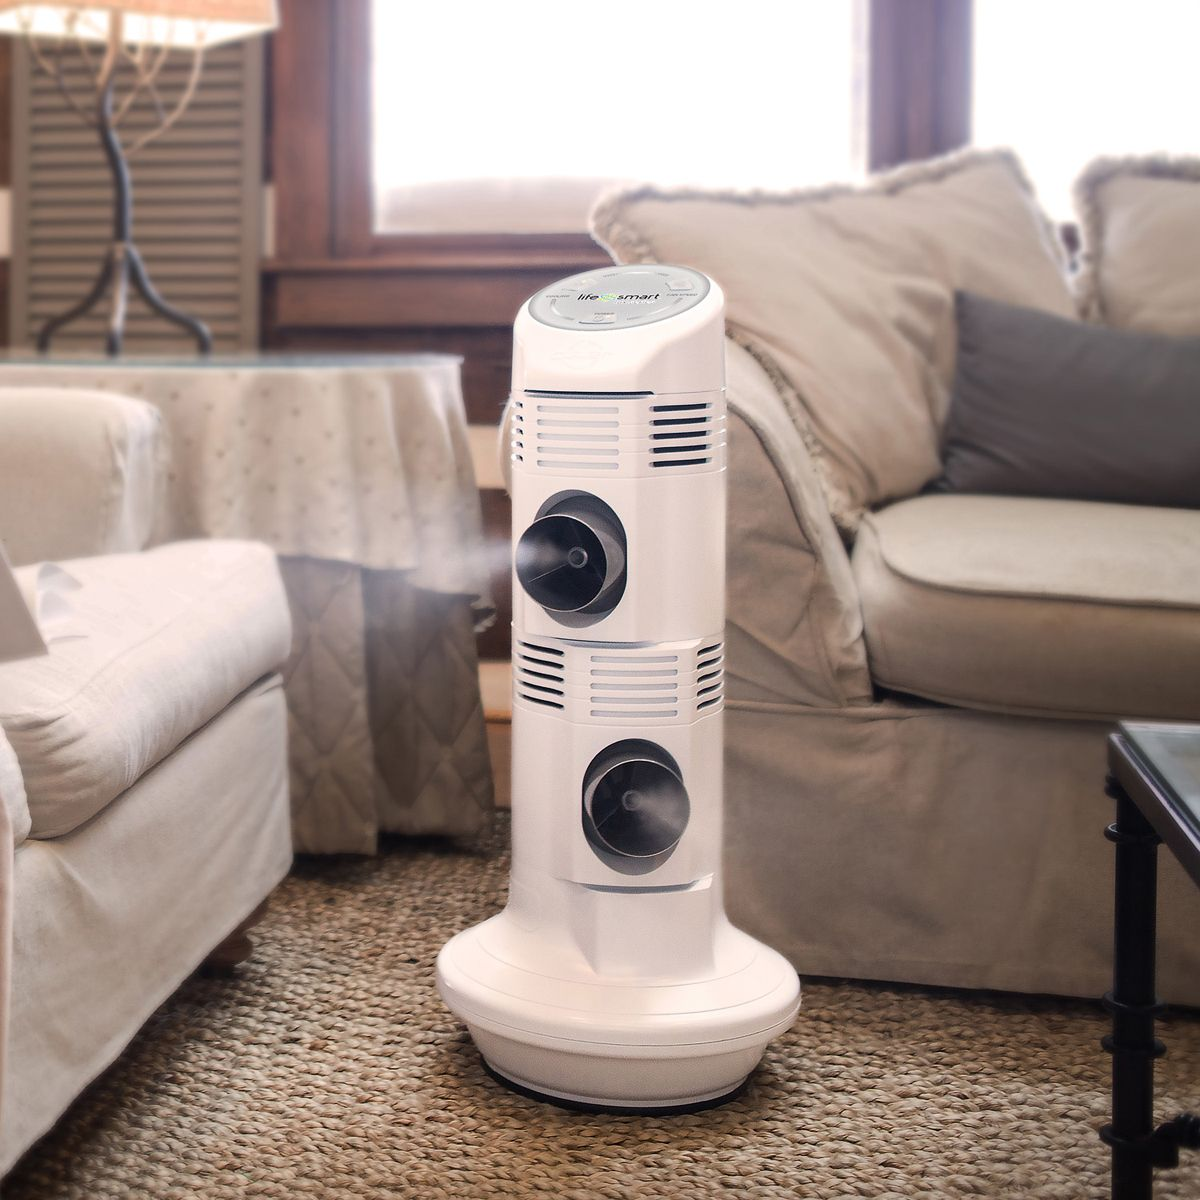 Your own personal air cooler, indoors or out. Your house